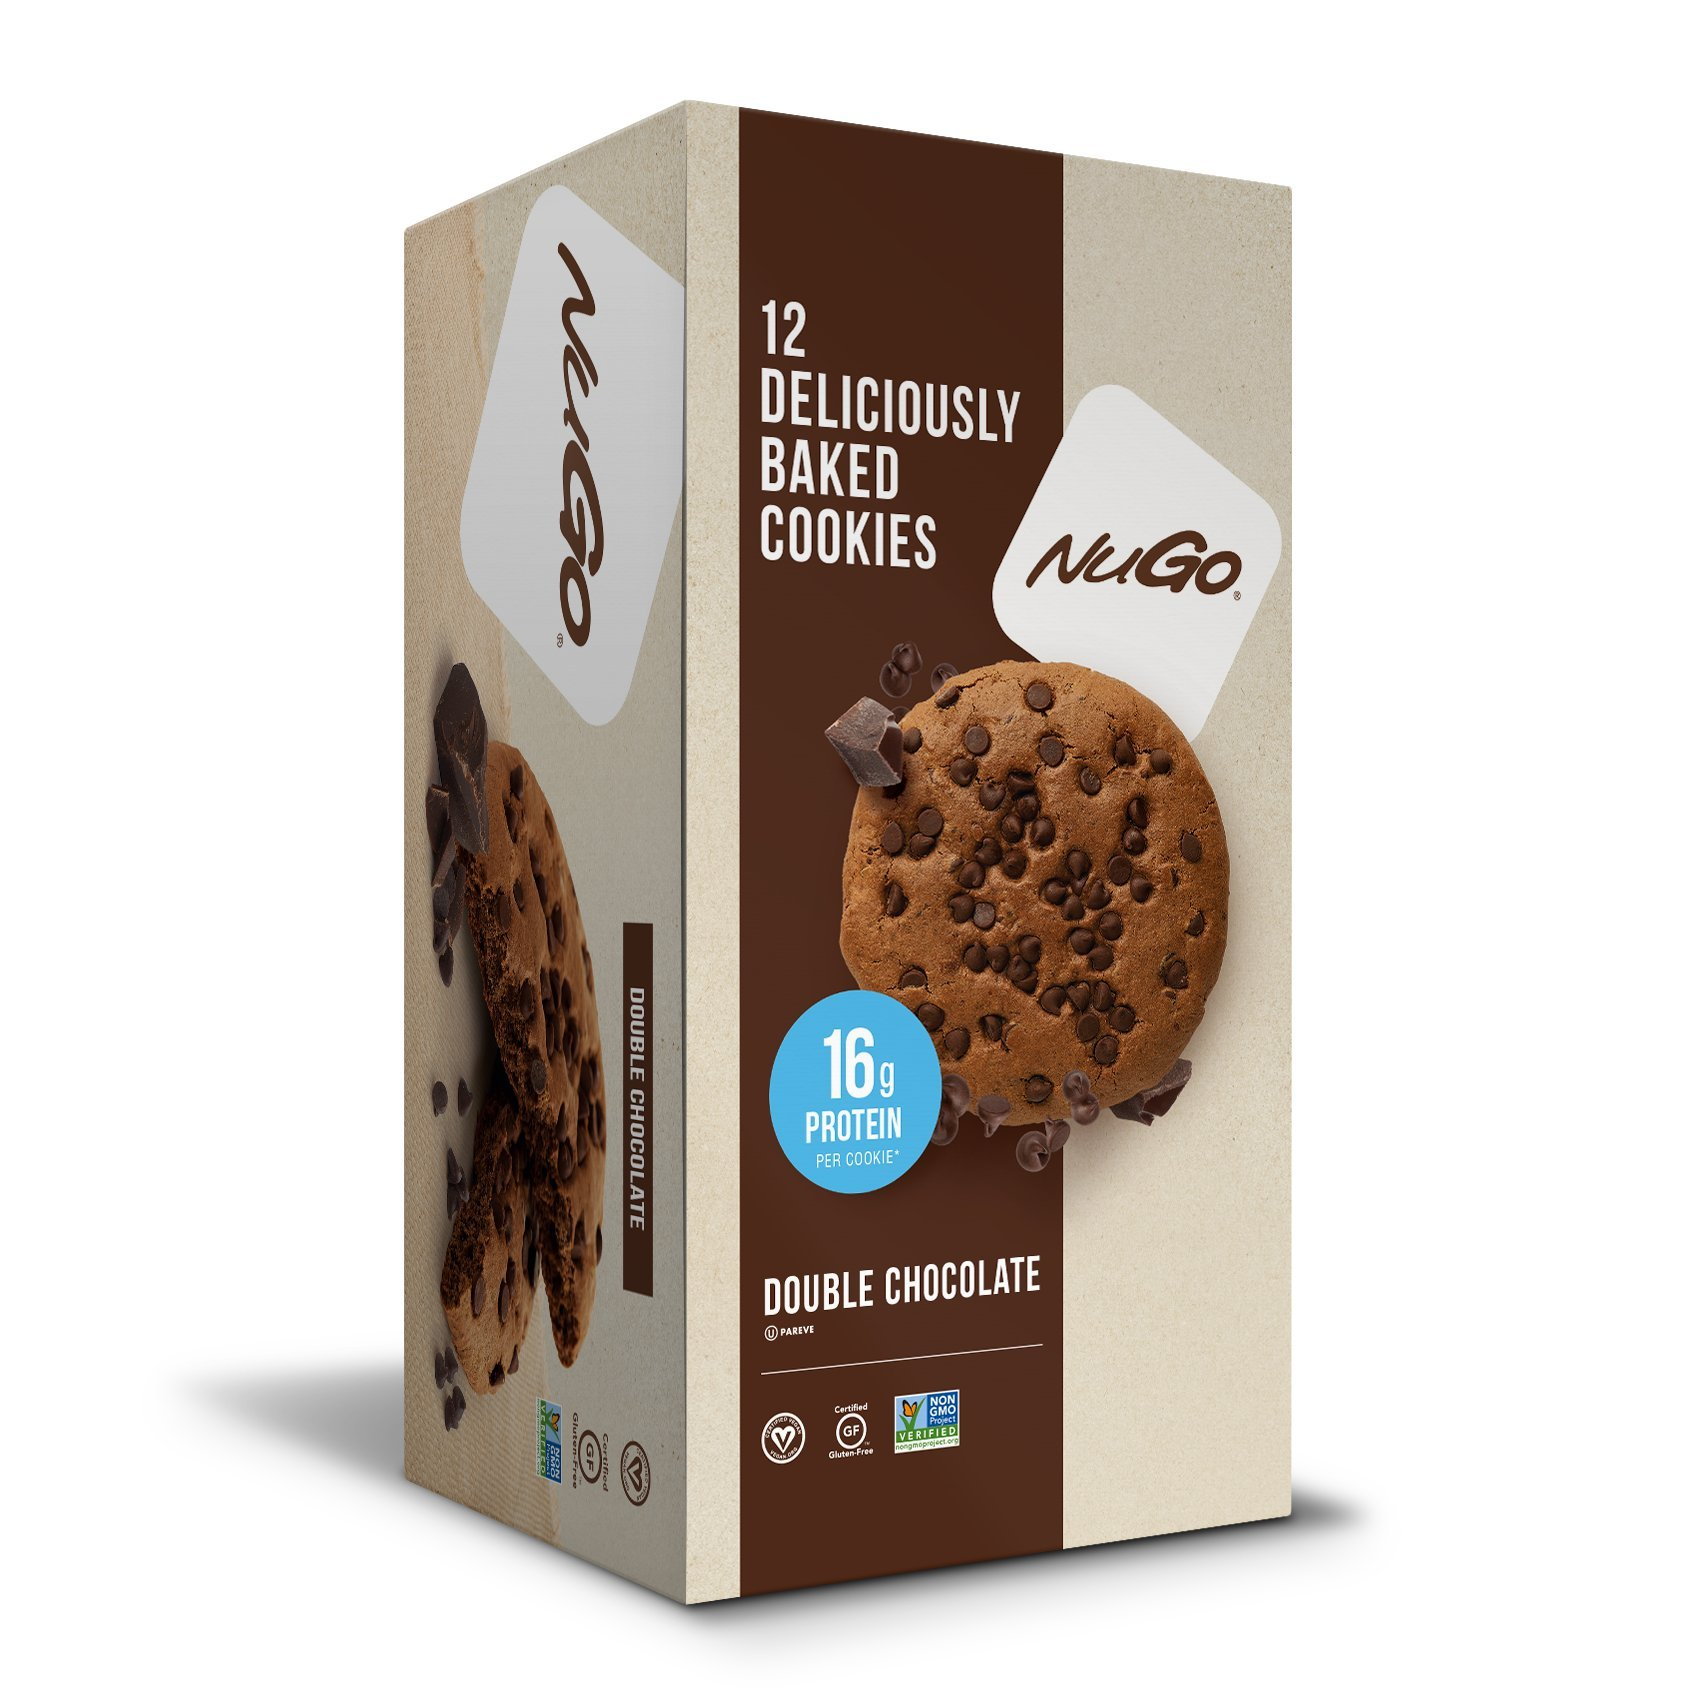 NuGo Protein Cookie, Double Chocolate, 16g Vegan Protein, Gluten Free, Soy Free, 12 Count by NuGo (Image #3)